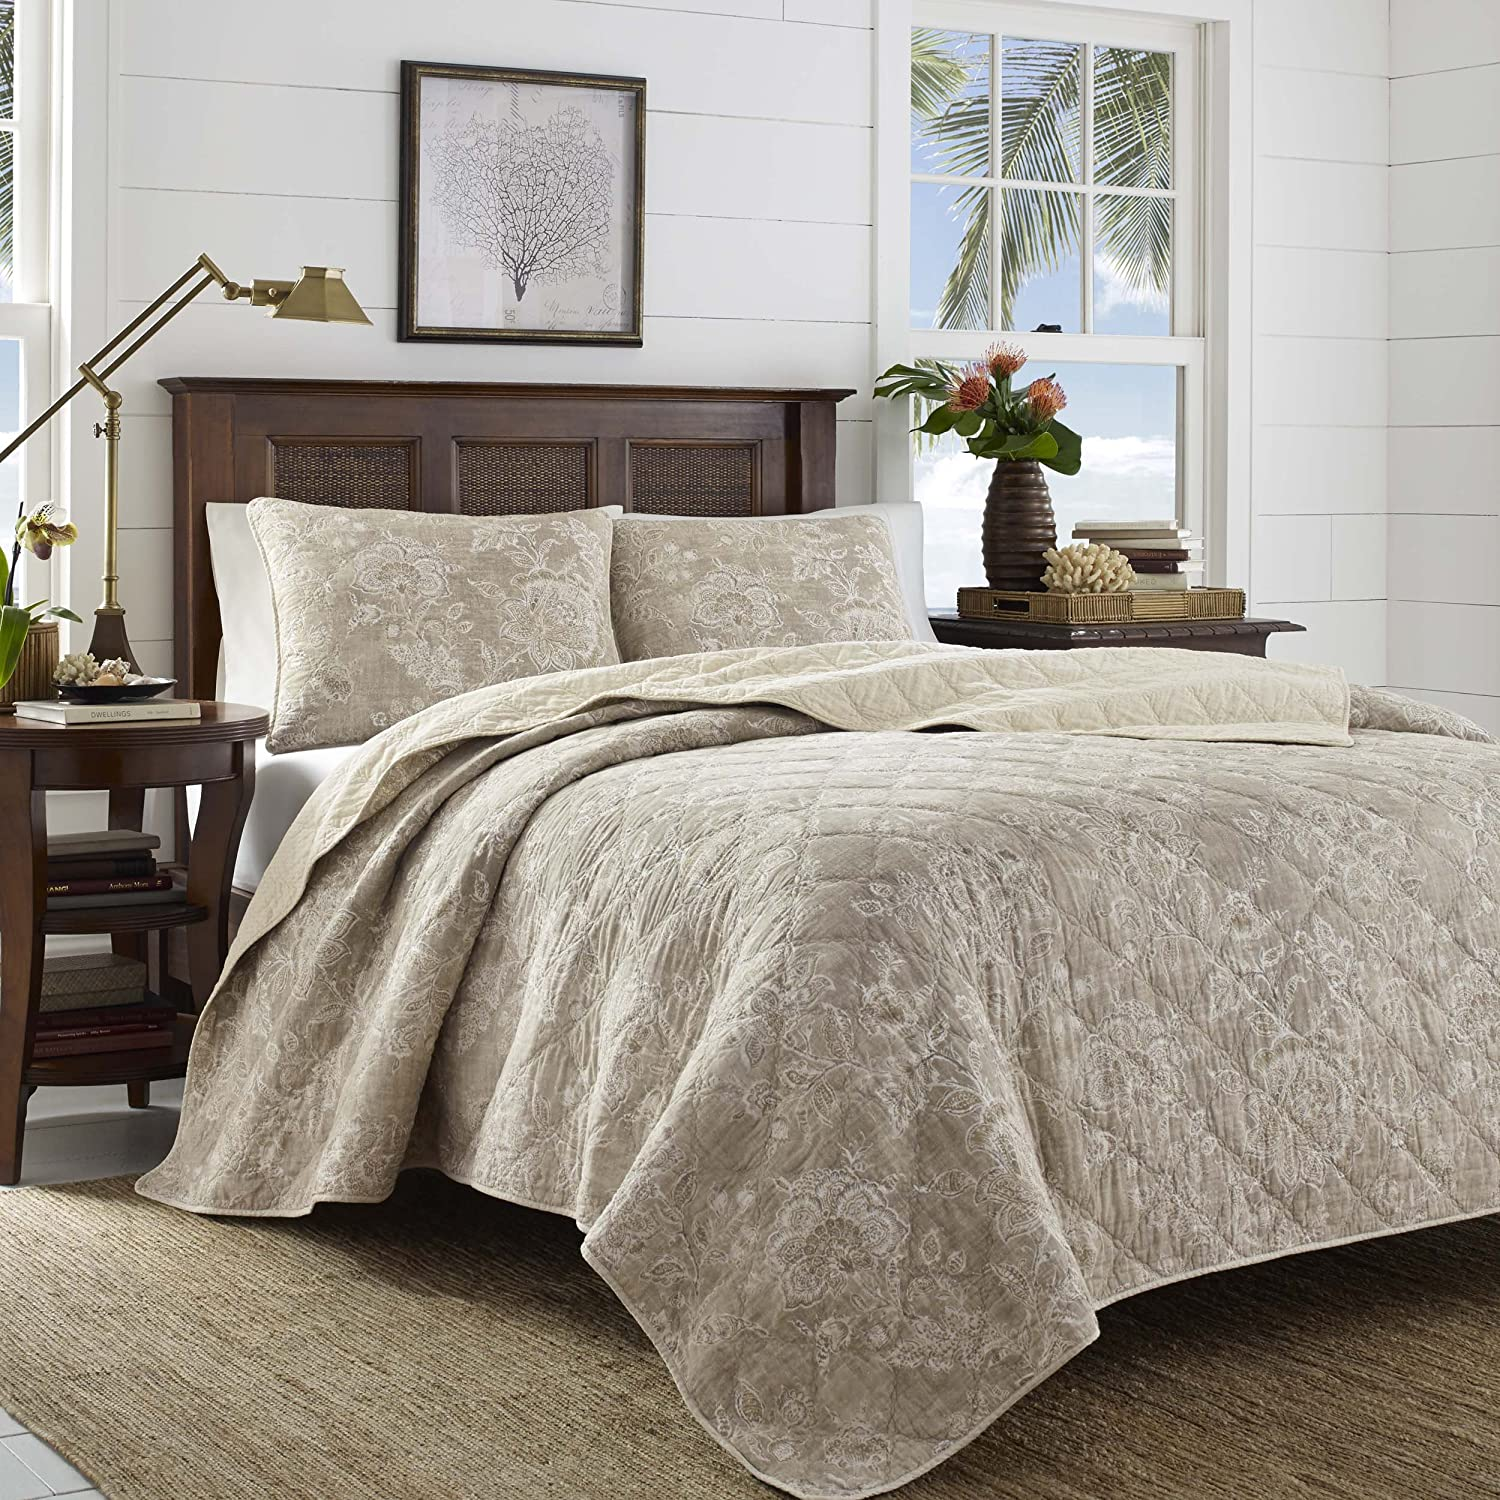 Tommy Bahama Tidewater Jacobean Quilt Set, Full/Queen, Medium Brown